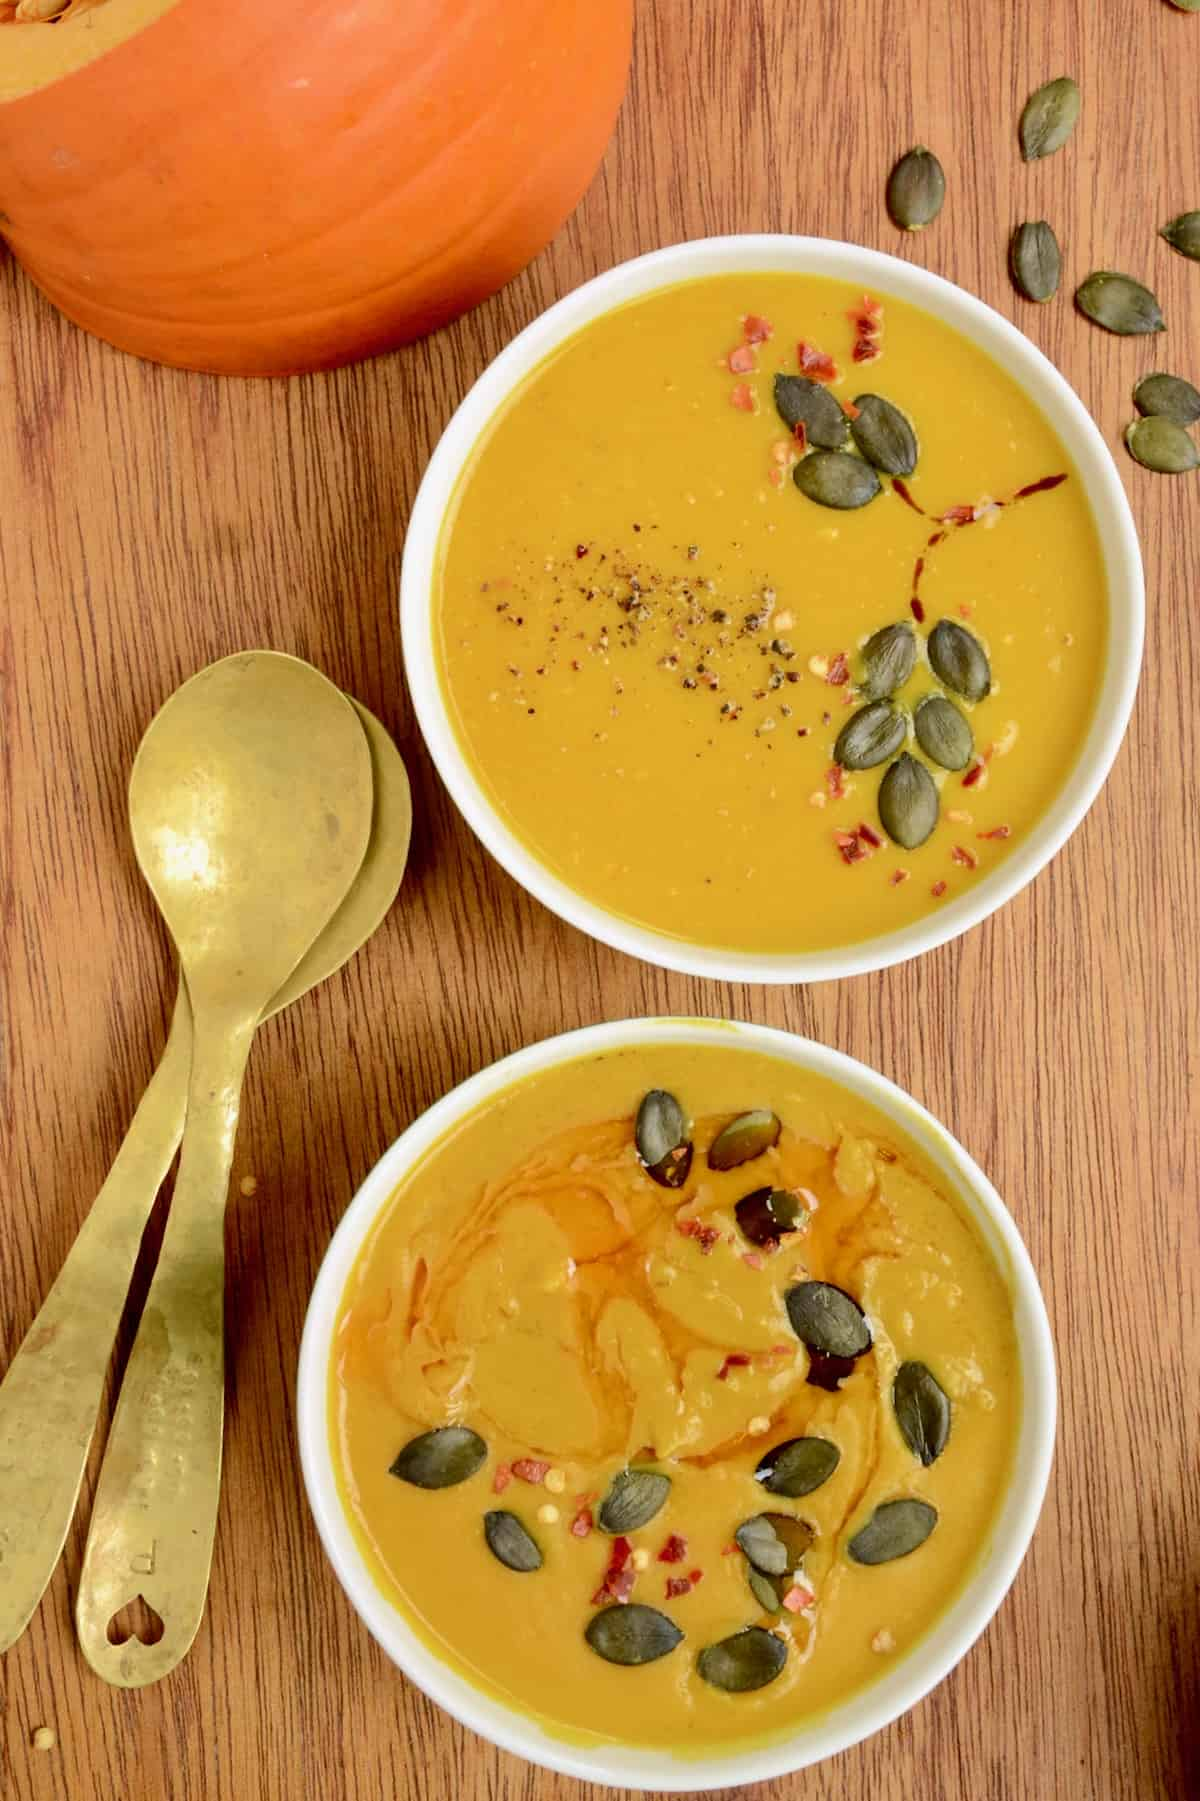 Two white bowls containing orange coloured soup, next to two brass spoons, and a wedge of pumpkin.